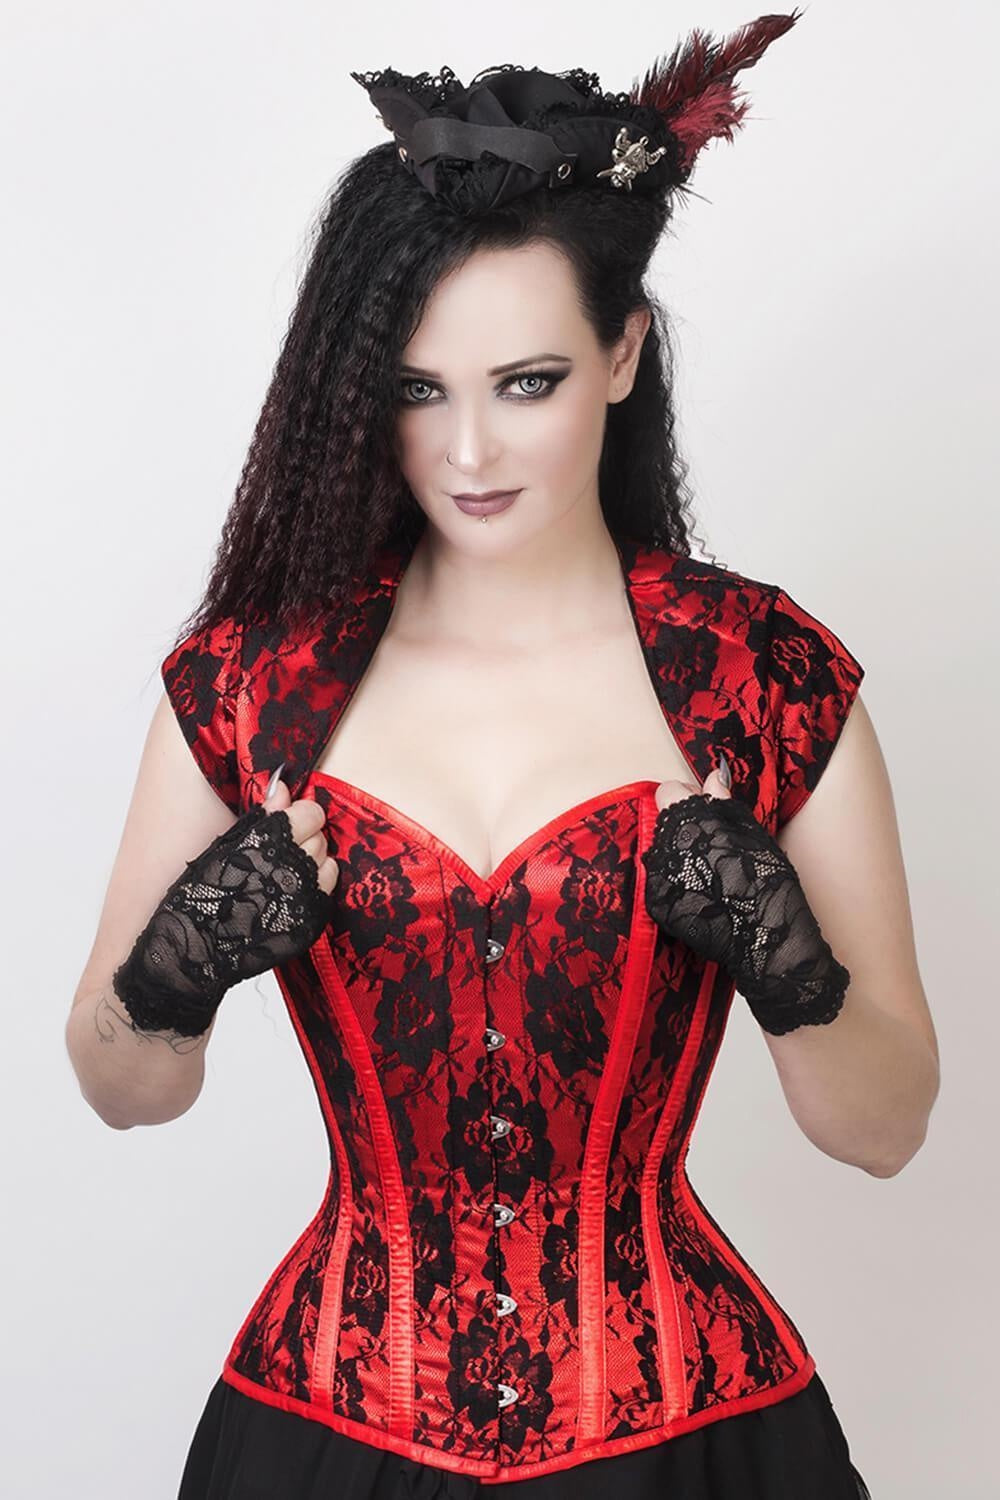 Sweetheart Vixen Corset & Bolero Set in Redrum